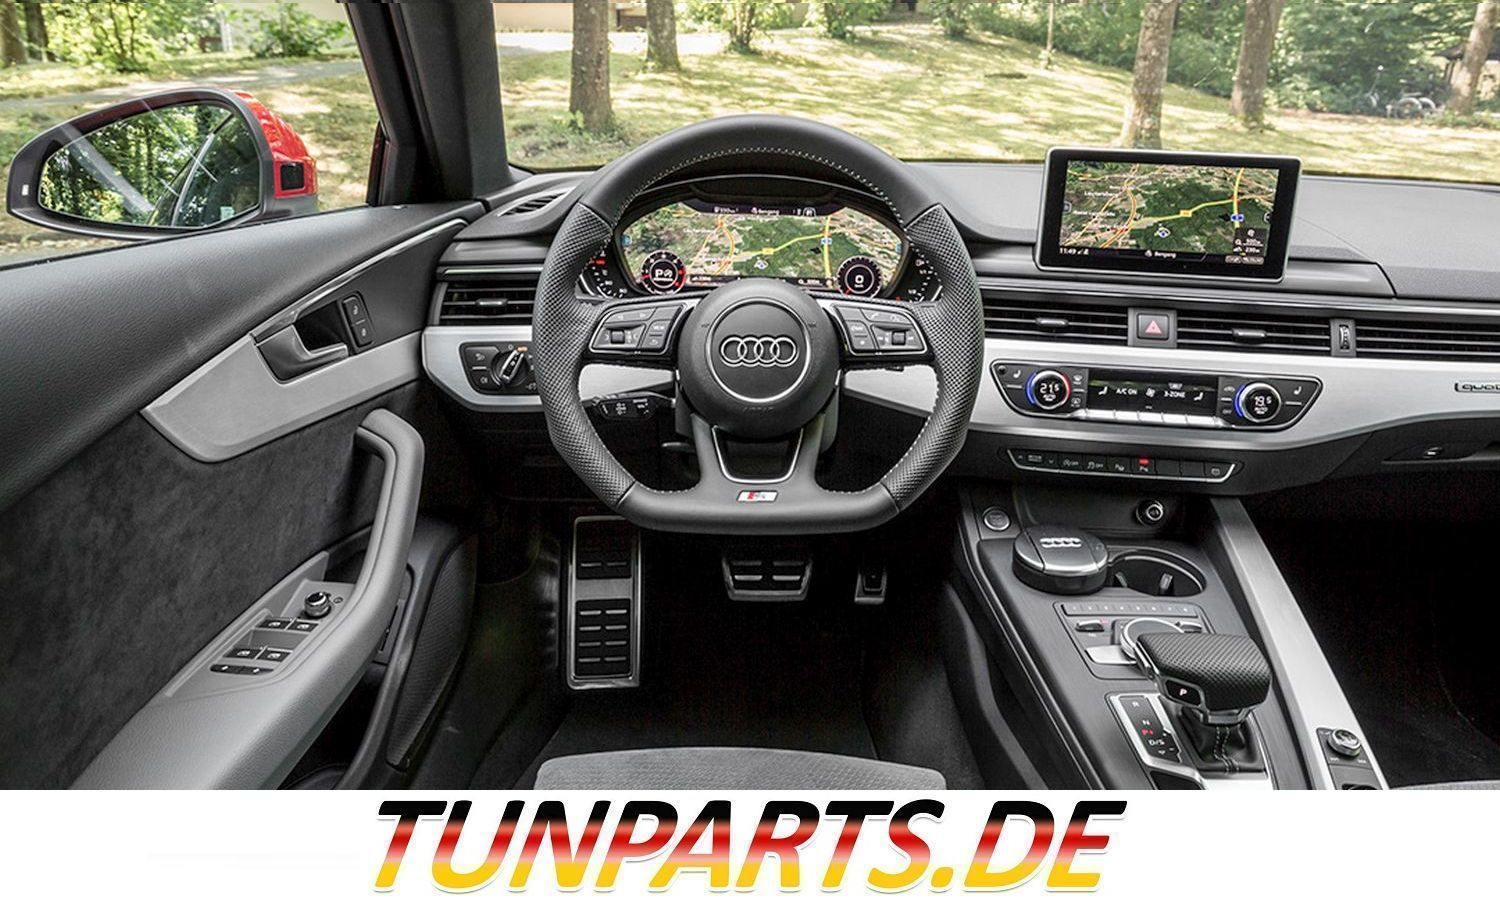 Pedal Caps For Audi A4 B9 A5 F5 Buy Online At Tunparts